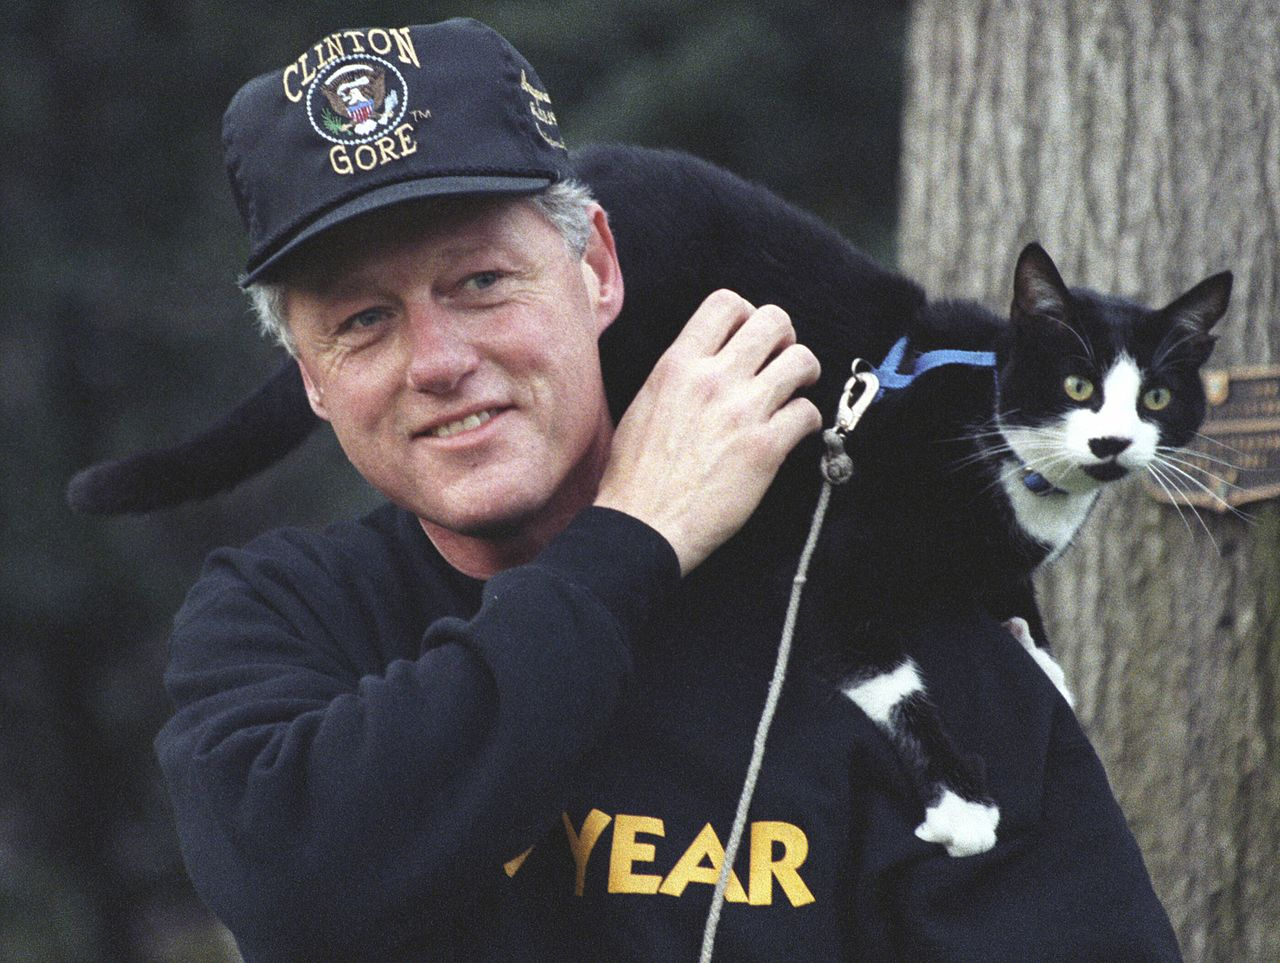 Bill Clinton con il gatto Socks